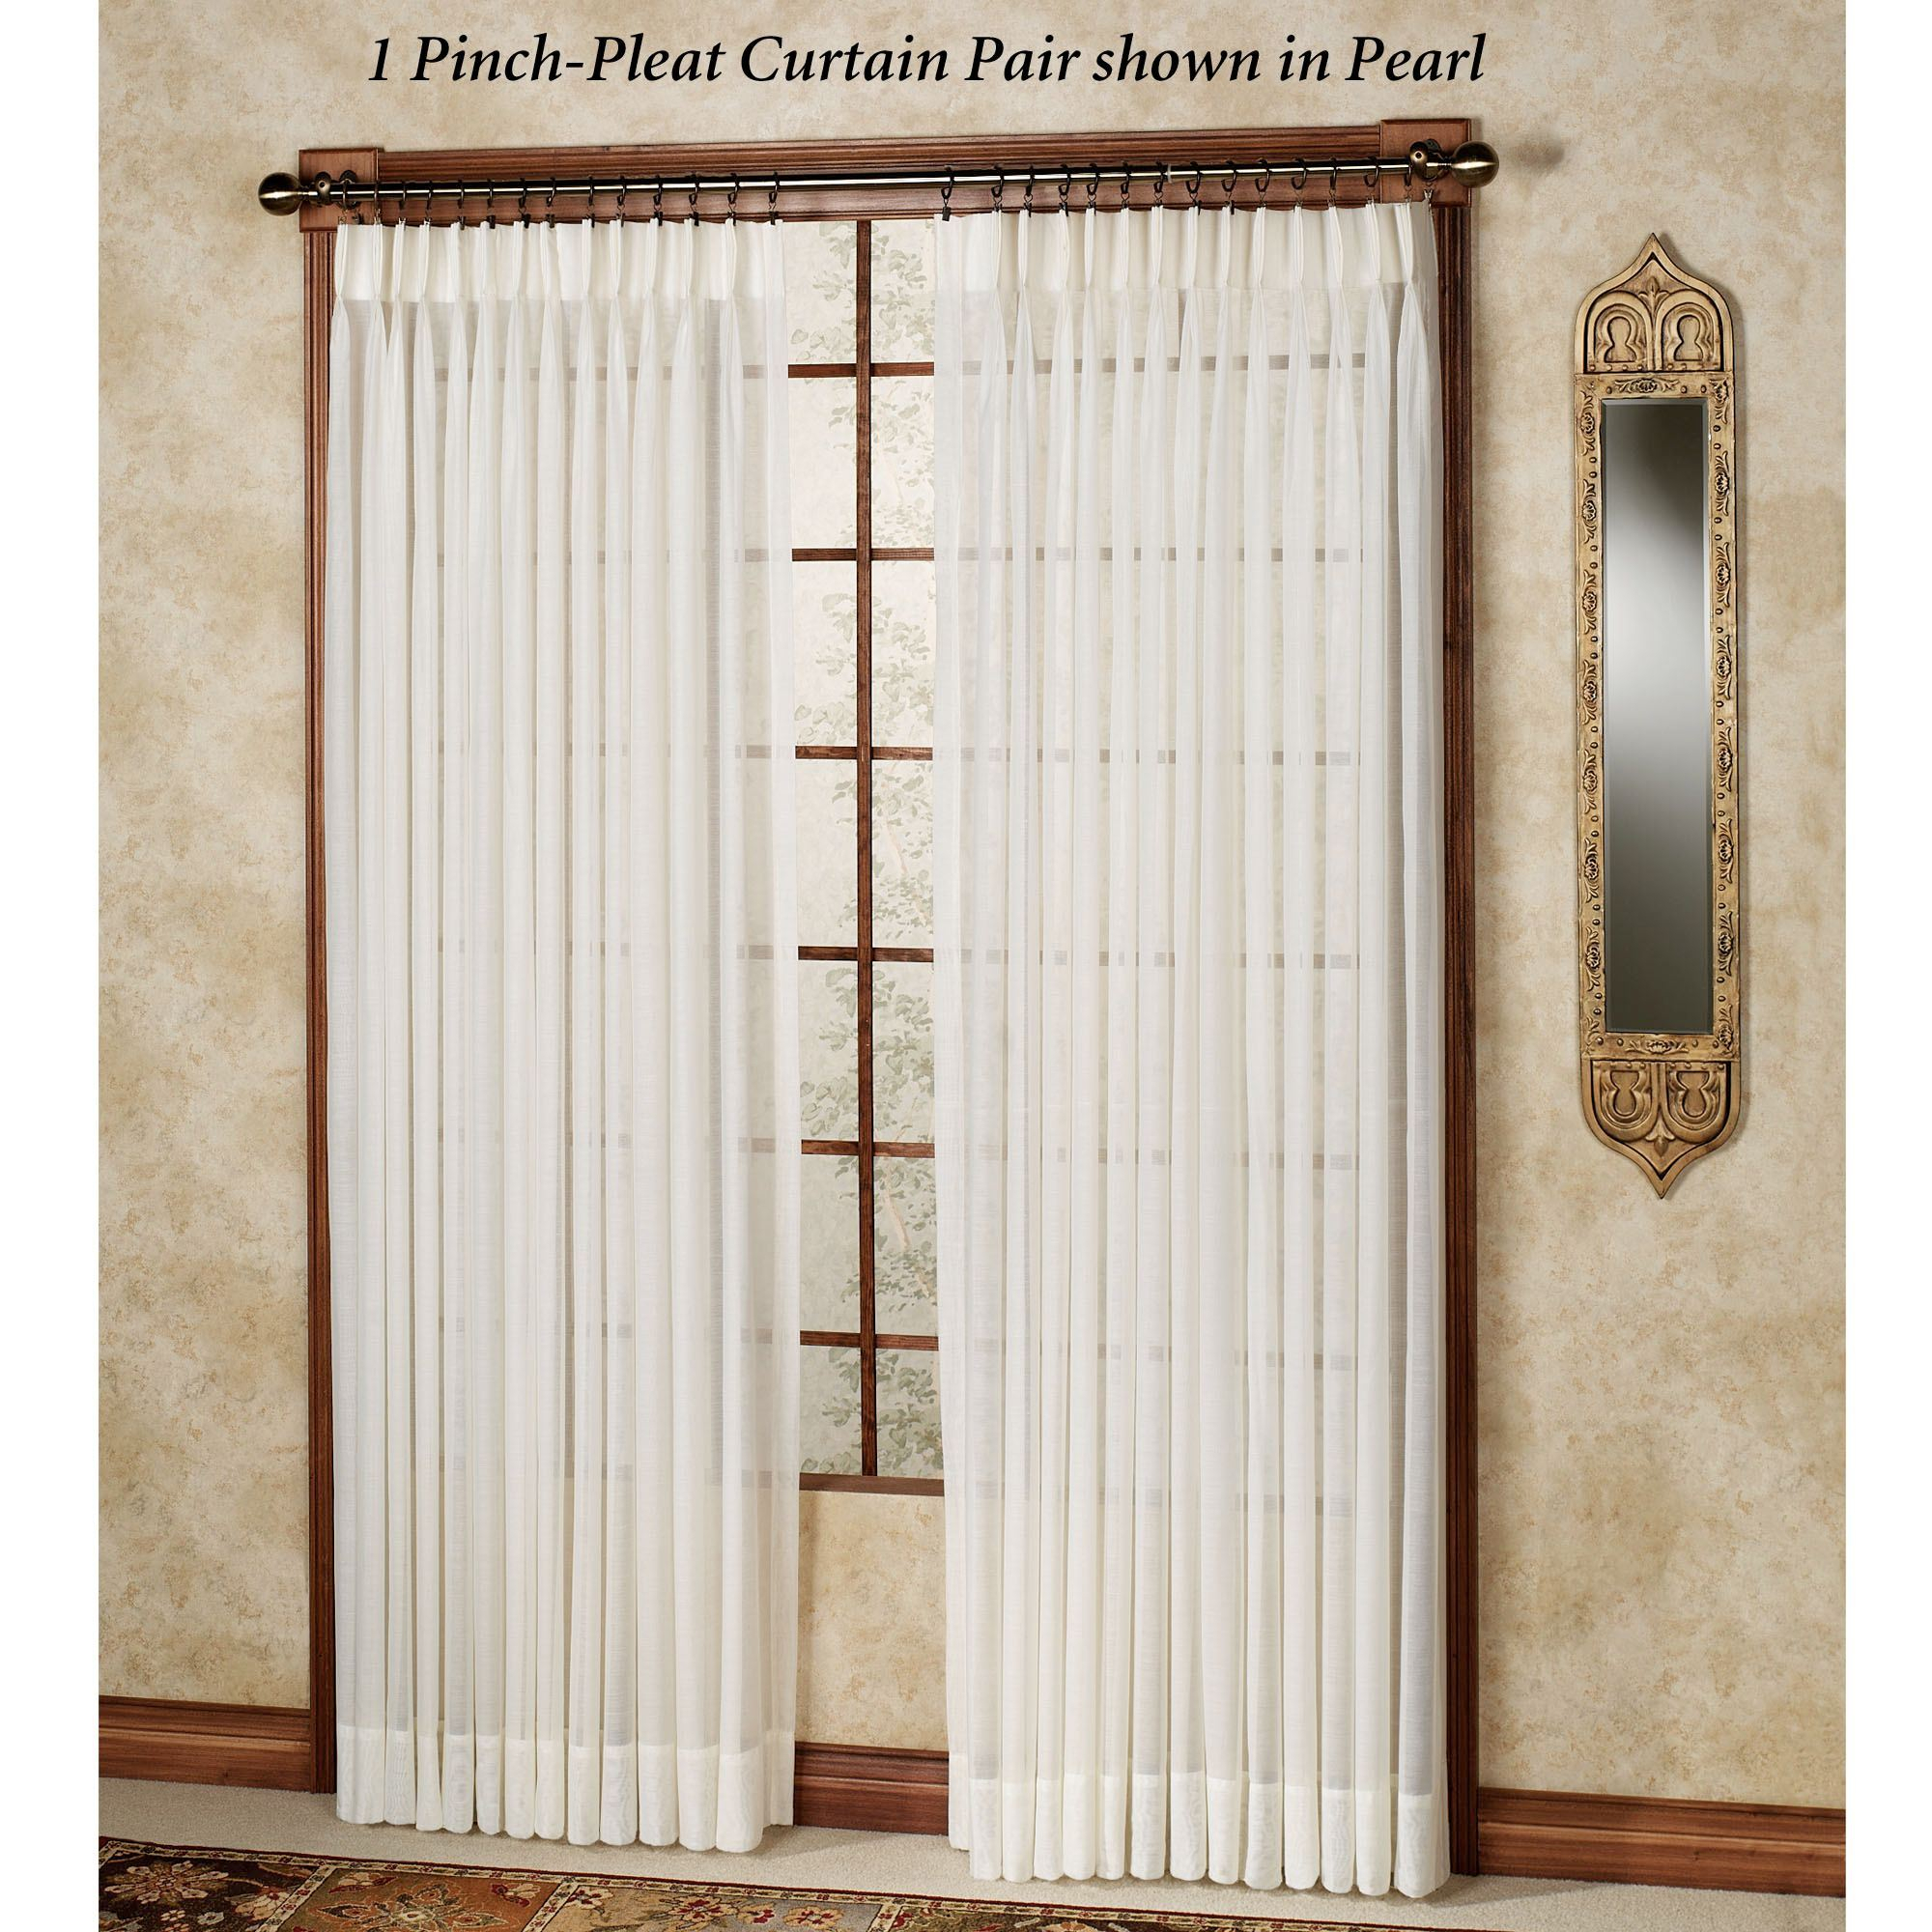 Splendor Semi Sheer Pinch Pleat Drapery Curtain Pair Throughout Double Pinch Pleat Top Curtain Panel Pairs (View 16 of 20)